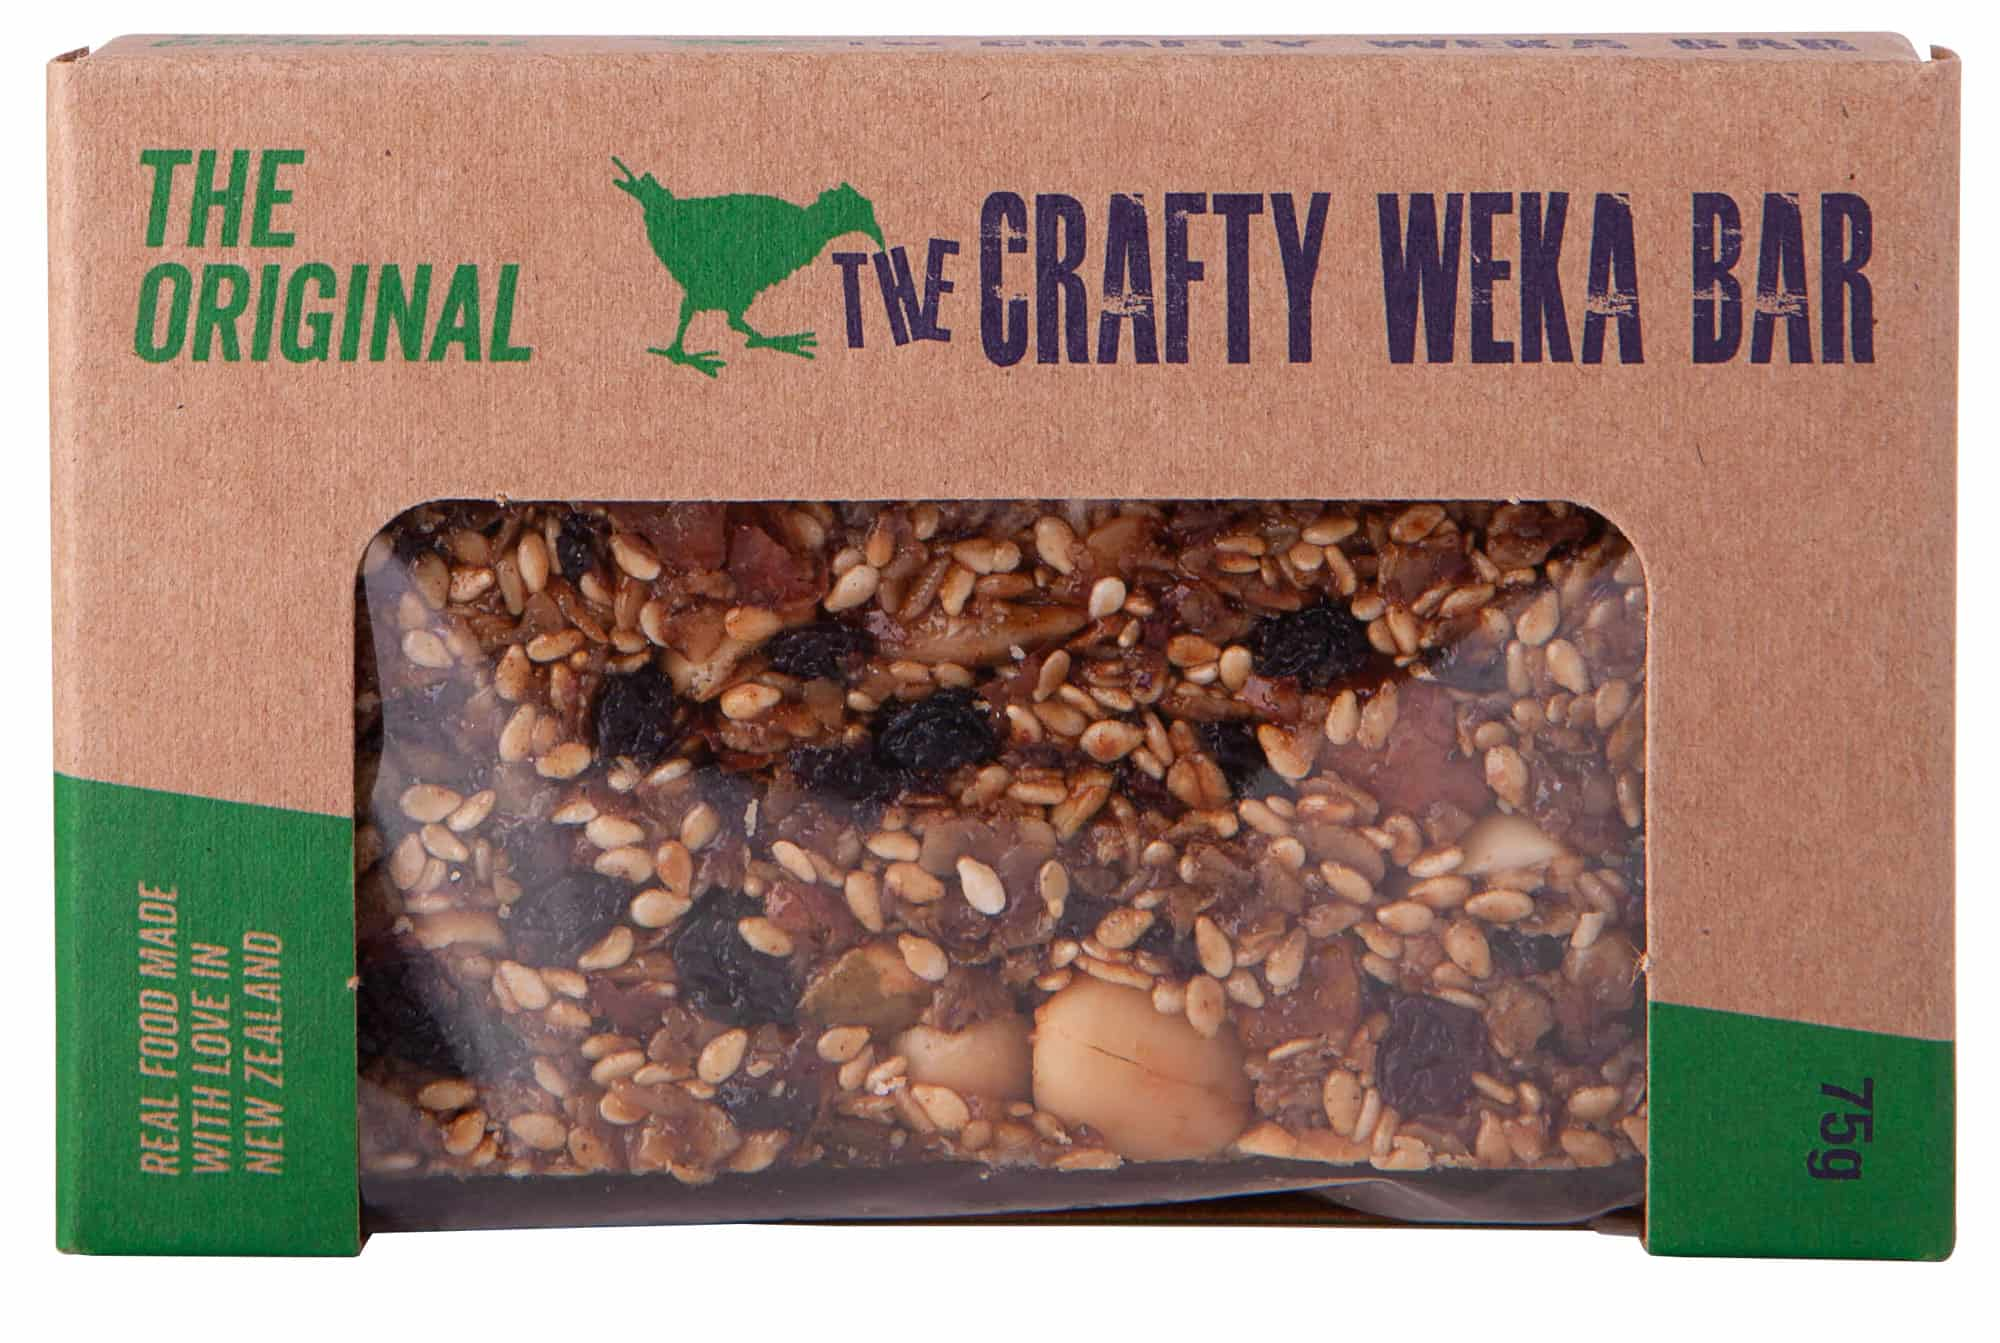 The Crafty Weka Bar The Original